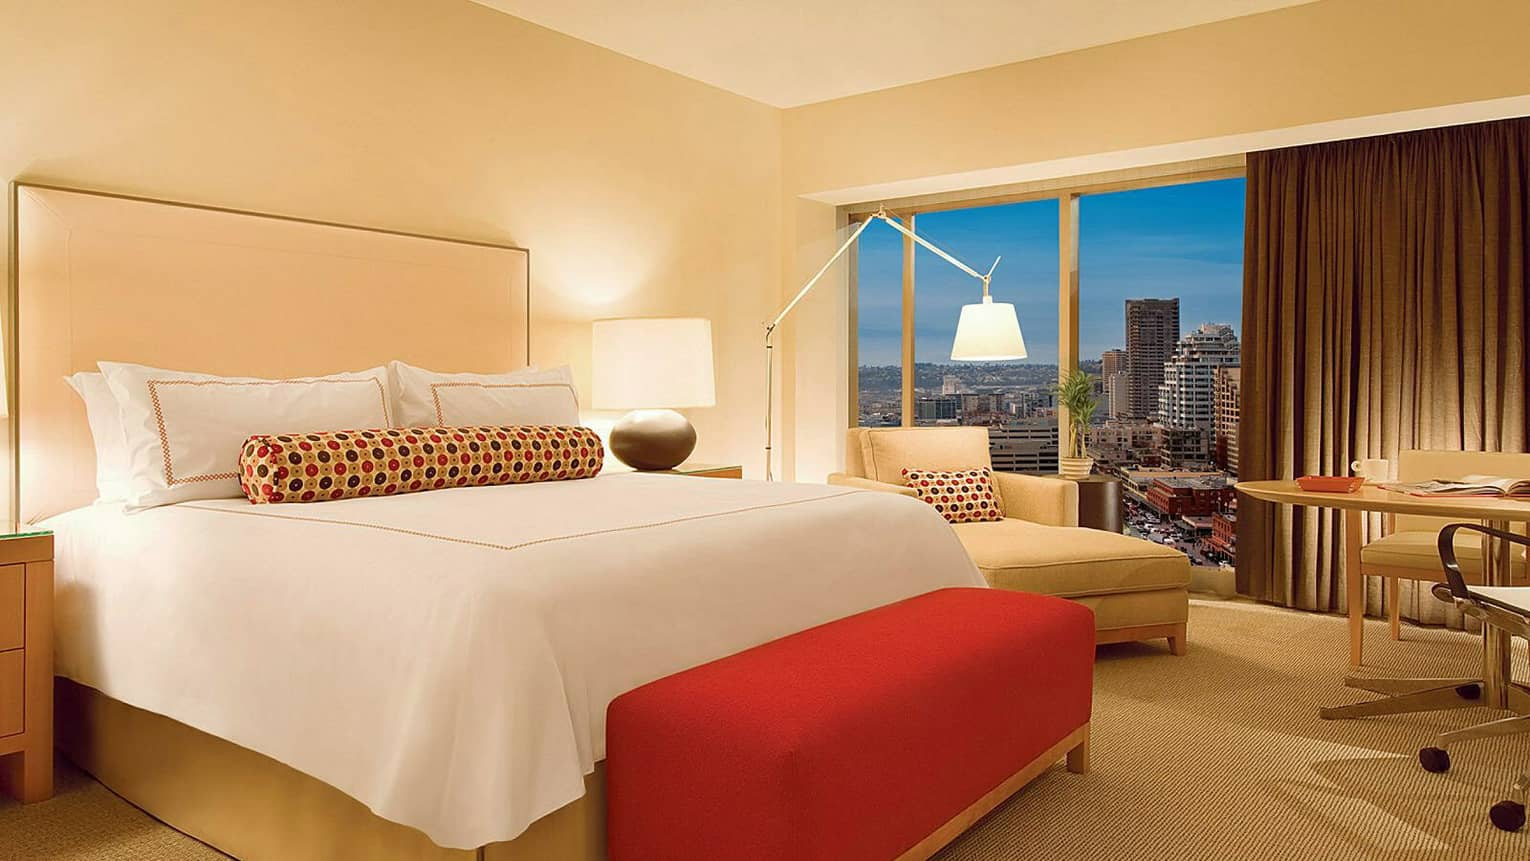 Deluxe Seattle-View Room bed with plush red bench, beige chaise in front of window, urban view